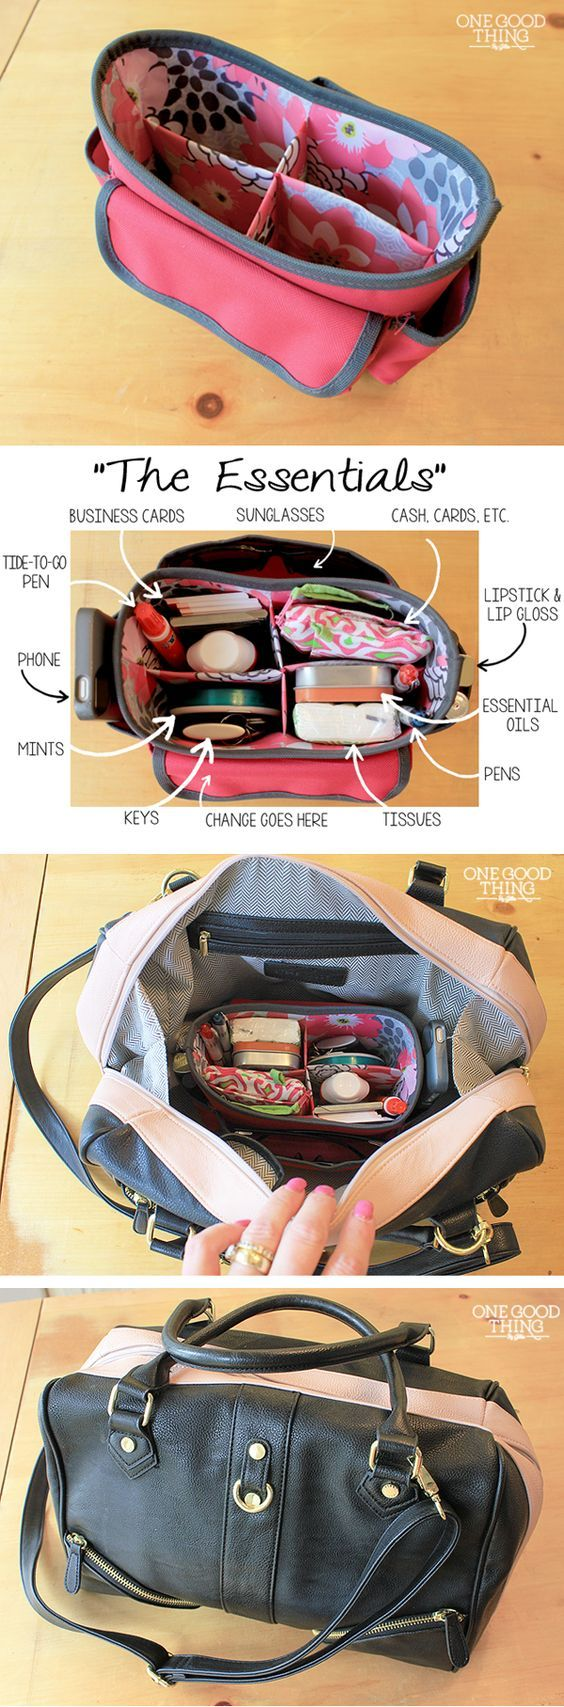 Photo of How To Switch Purses Quickly With A Purse Organizer • One Good Thing by Jillee